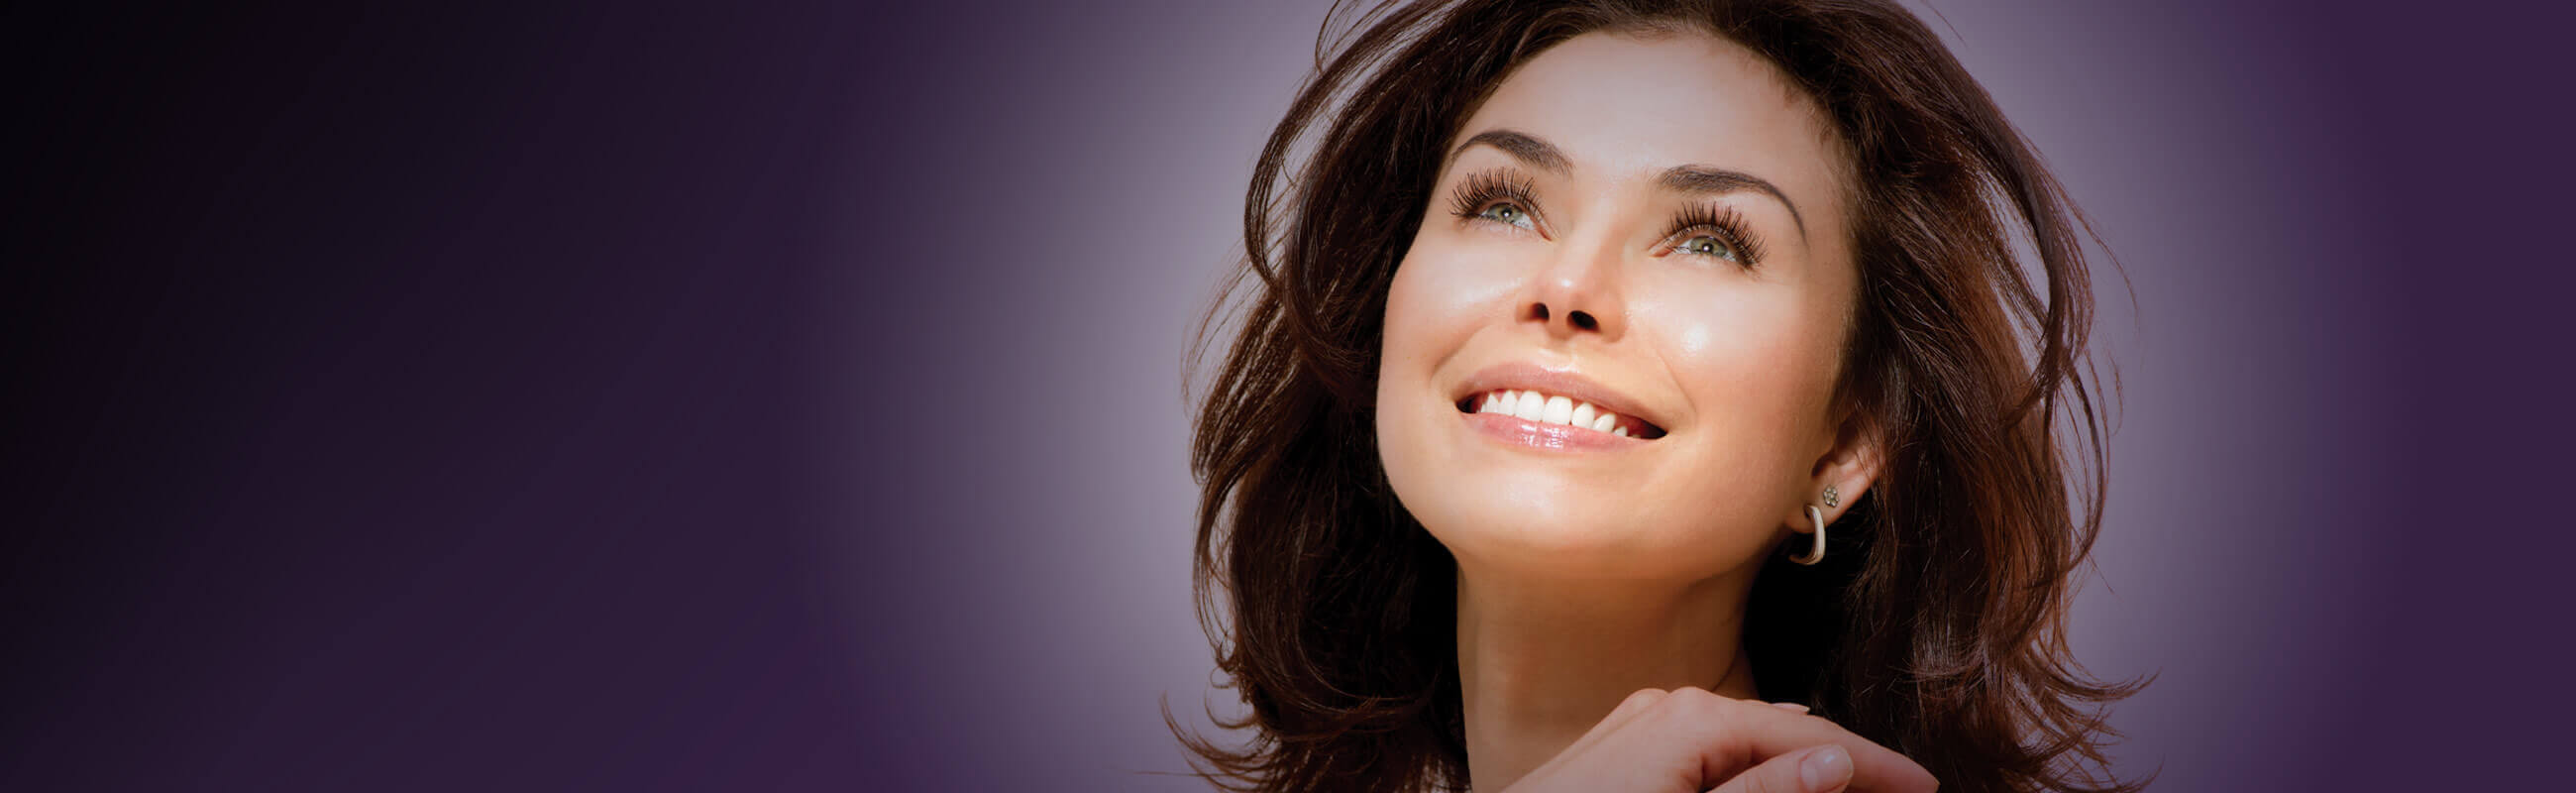 Juvederm for facial rejuvenation